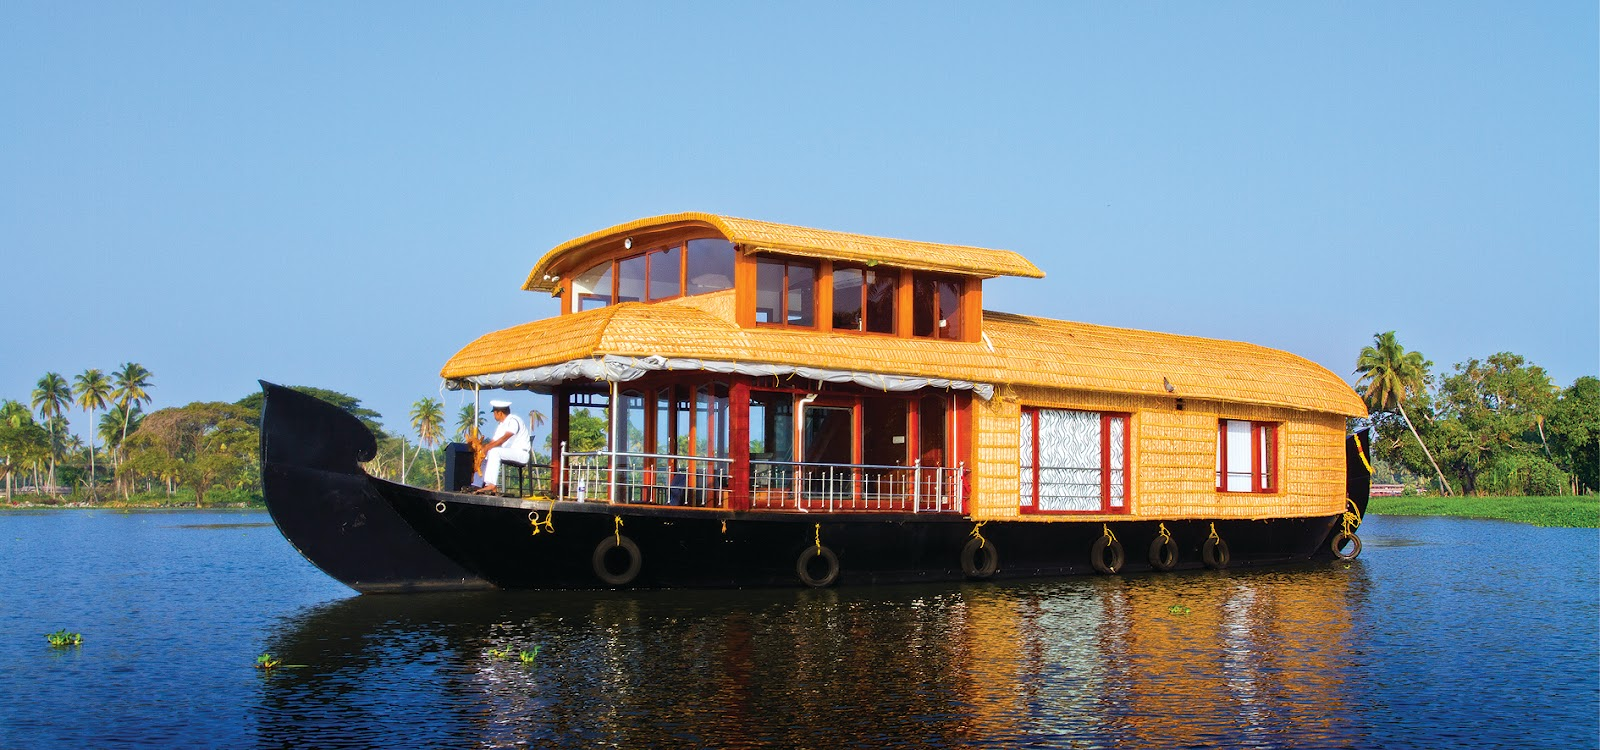 Pictures of a houseboat